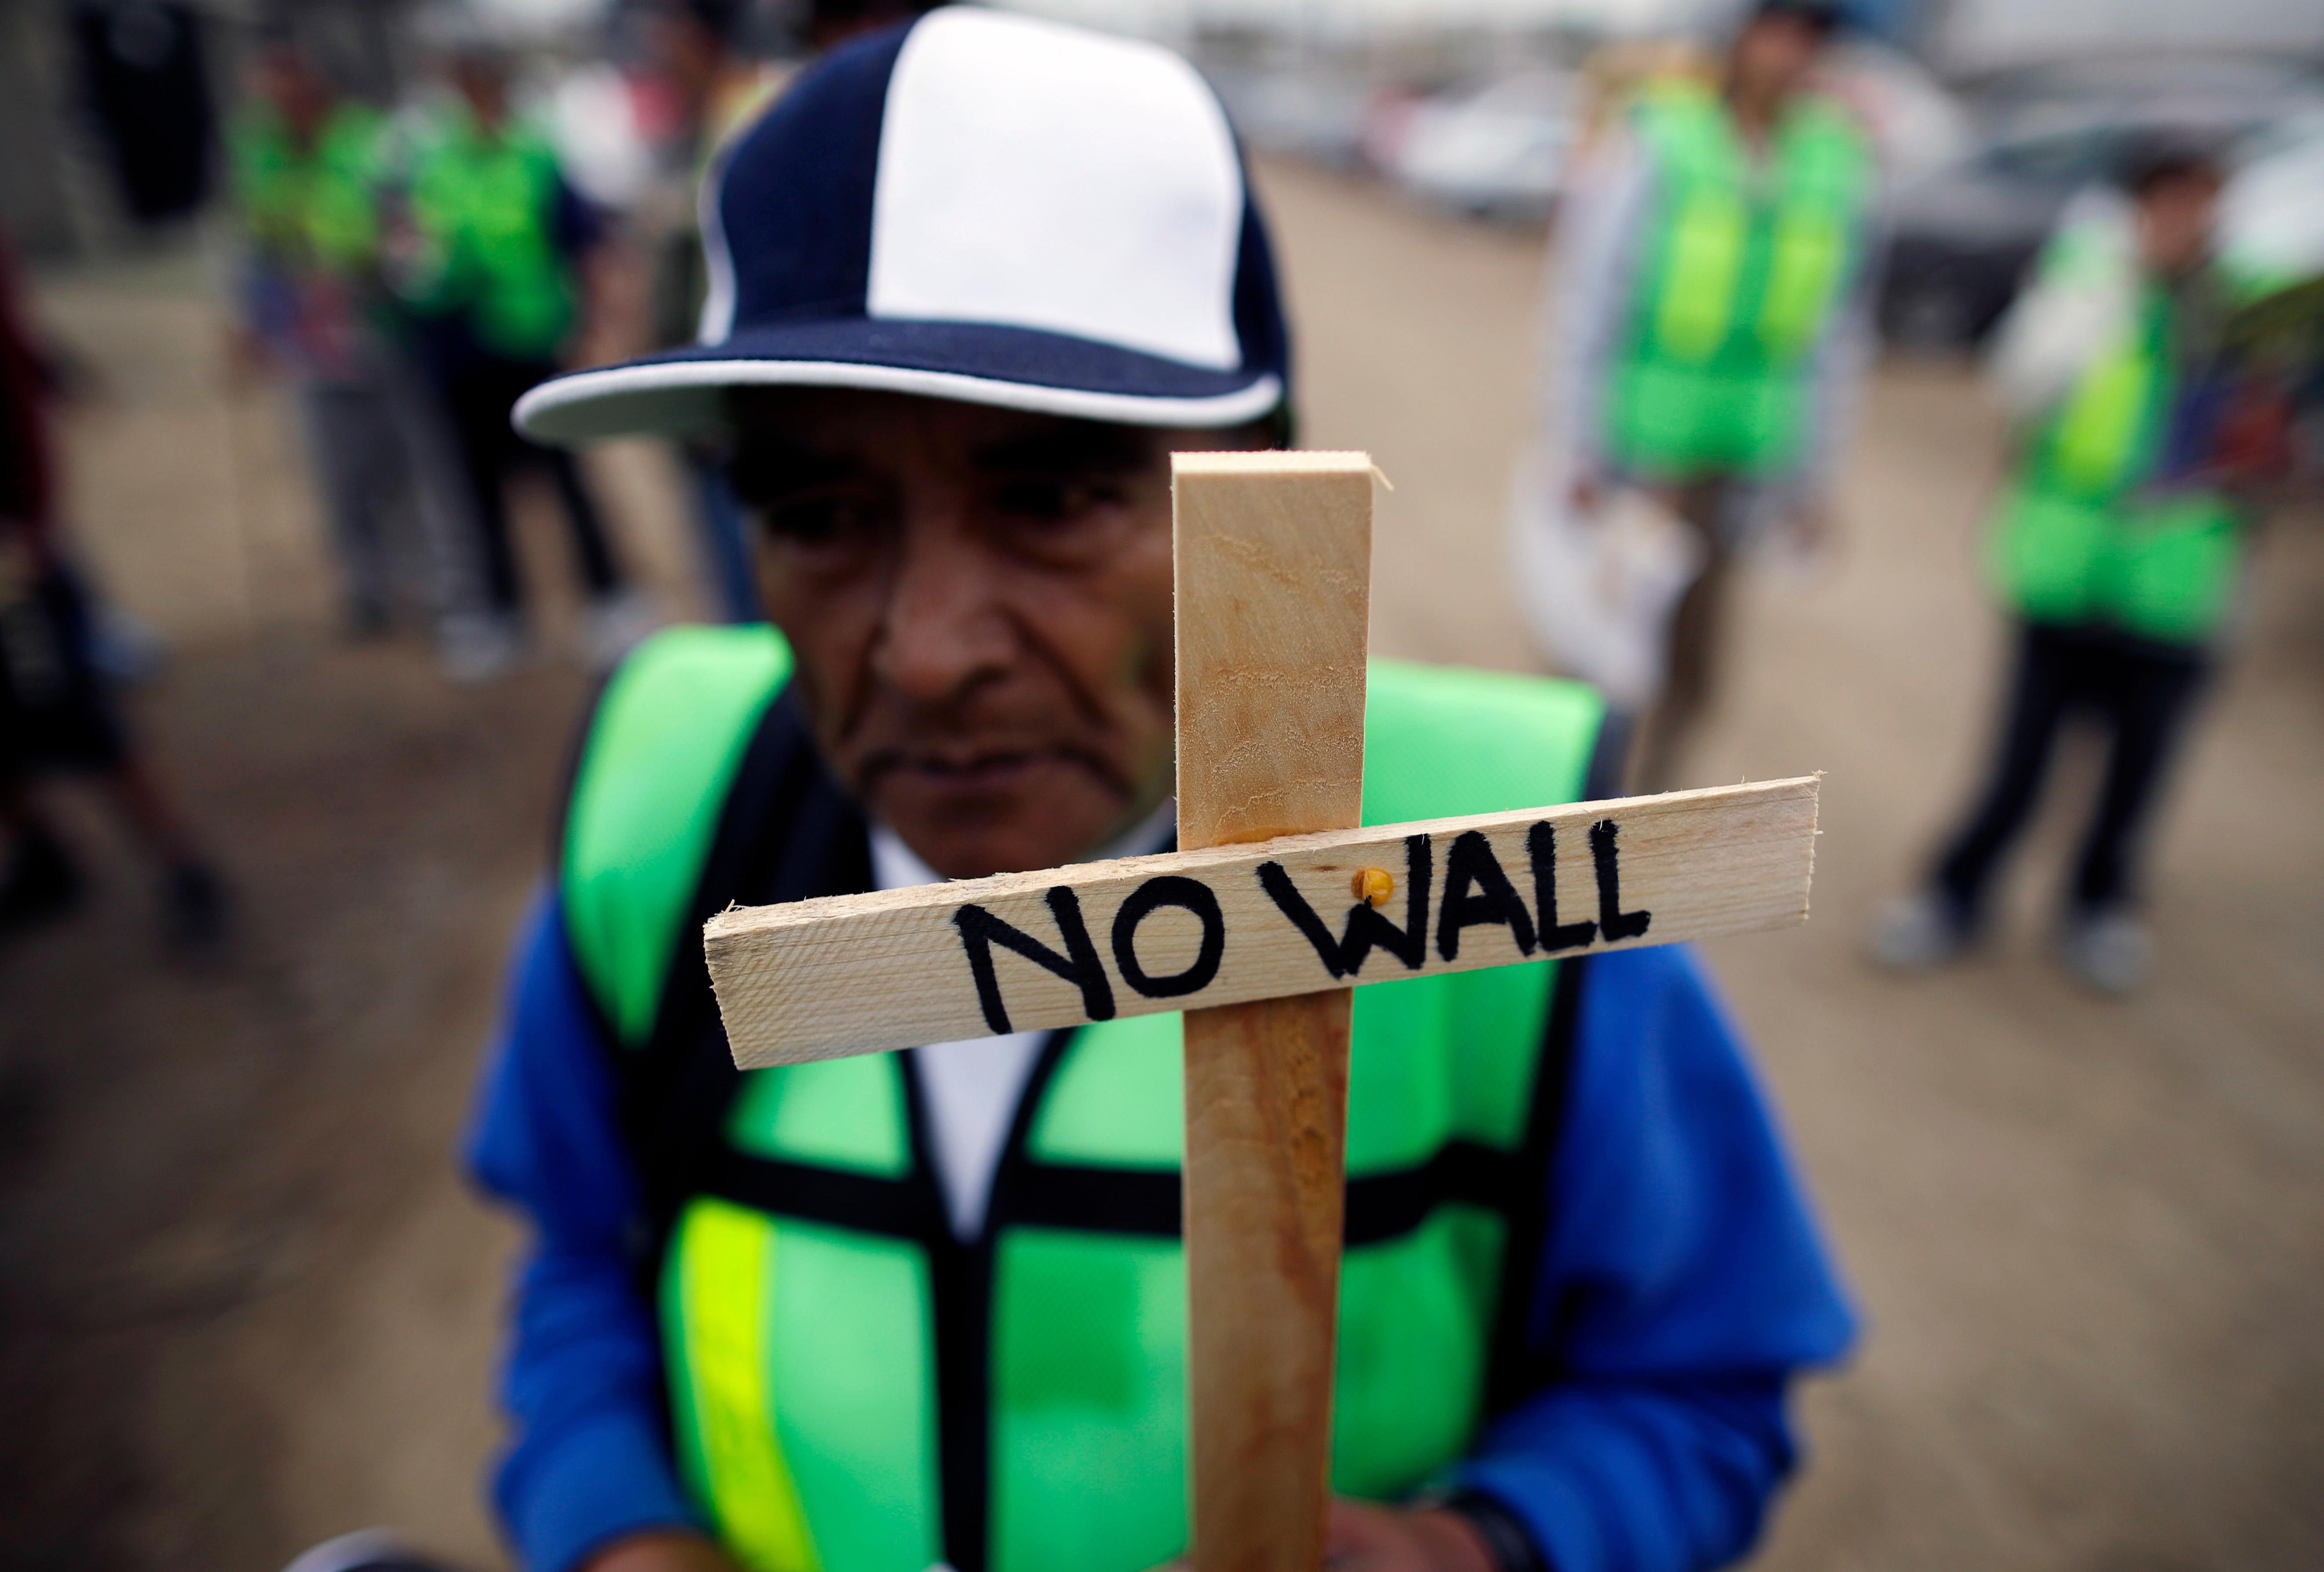 Roberto Perez Garcia of Mexico participates in a rally against the border wall on Tuesday, March 13, 2018, in Tijuana, Mexico. President Trump is scheduled to visit the site of the border wall prototypes in the United States, which can be seen from where the protesters are gathering on the Mexico side. (AP Photo/Gregory Bull)